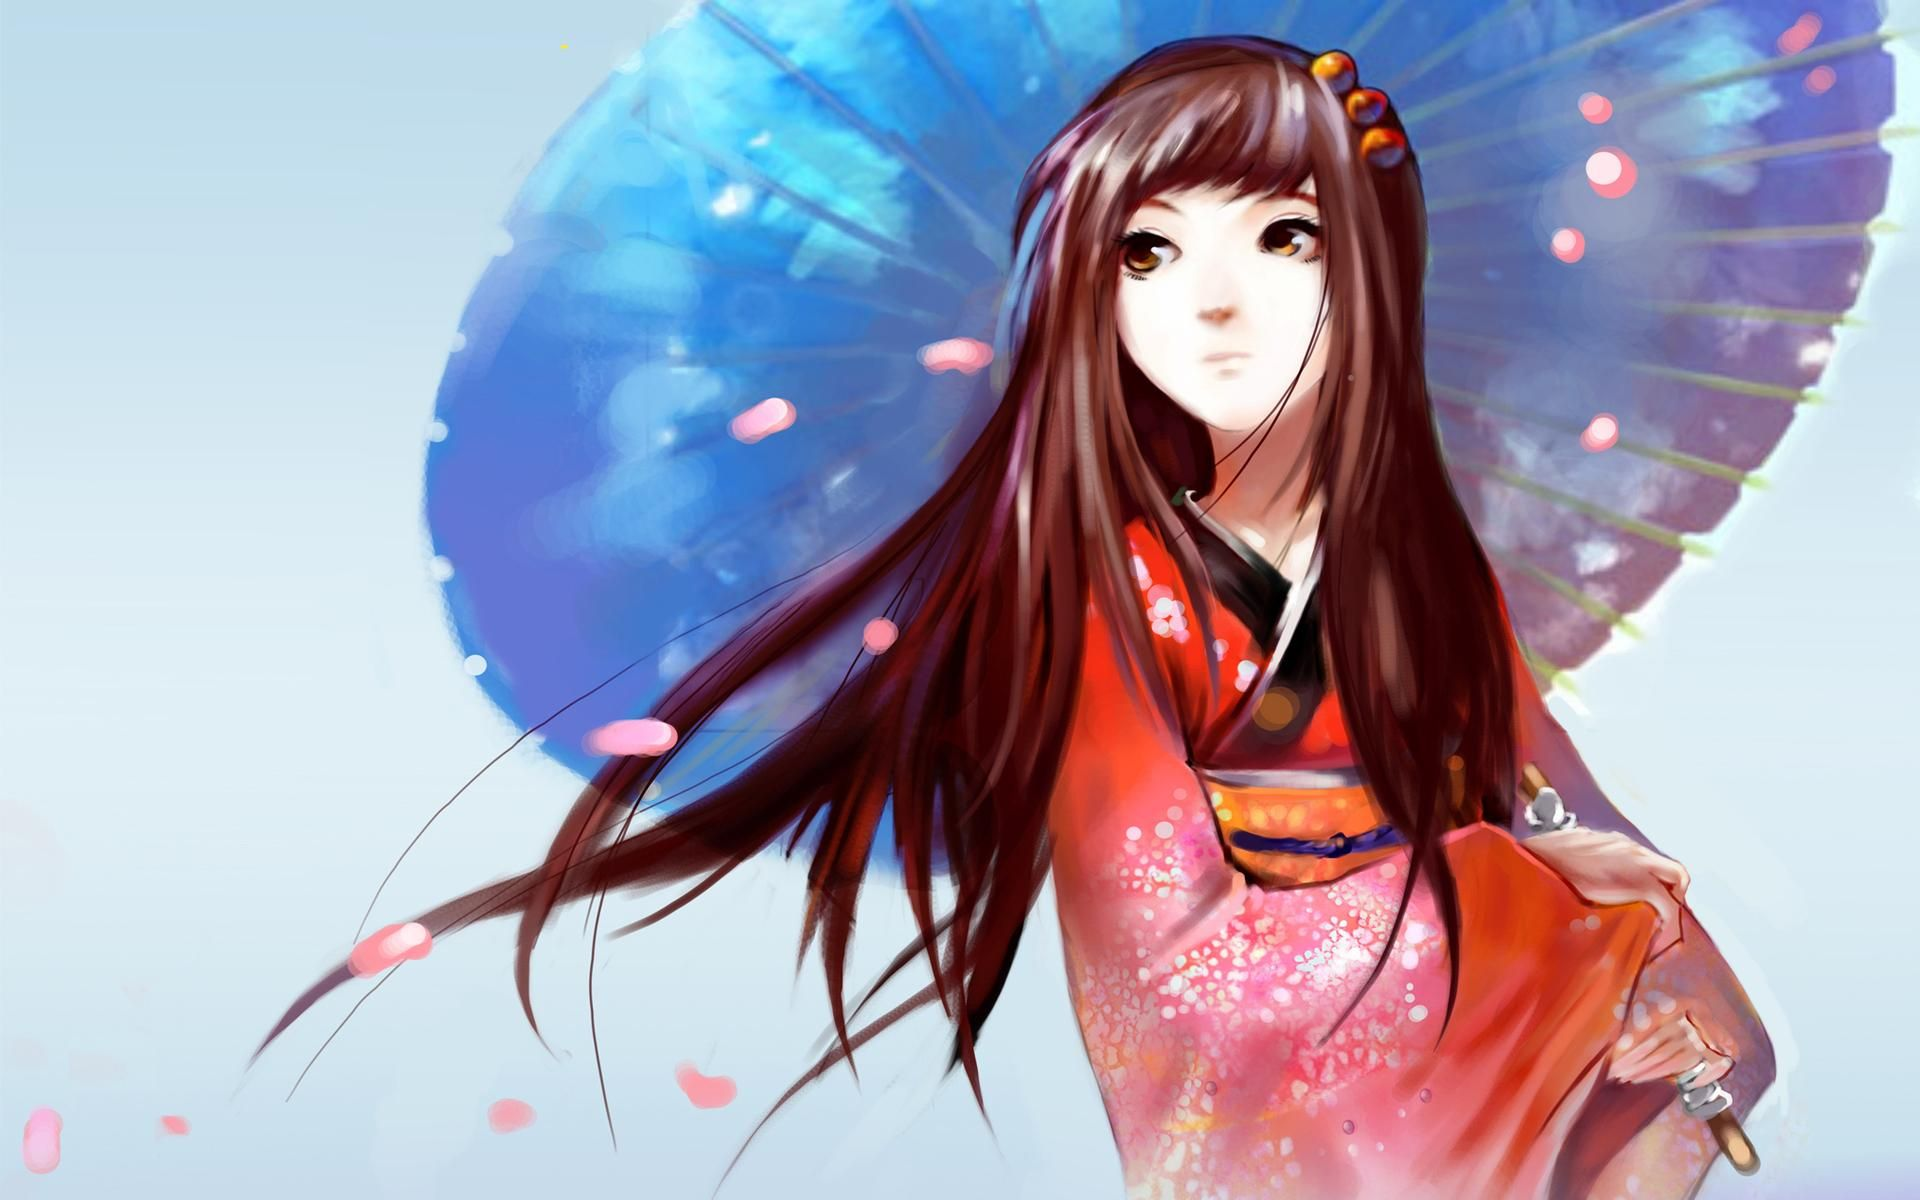 Japan animation japanese anime girl umbrella